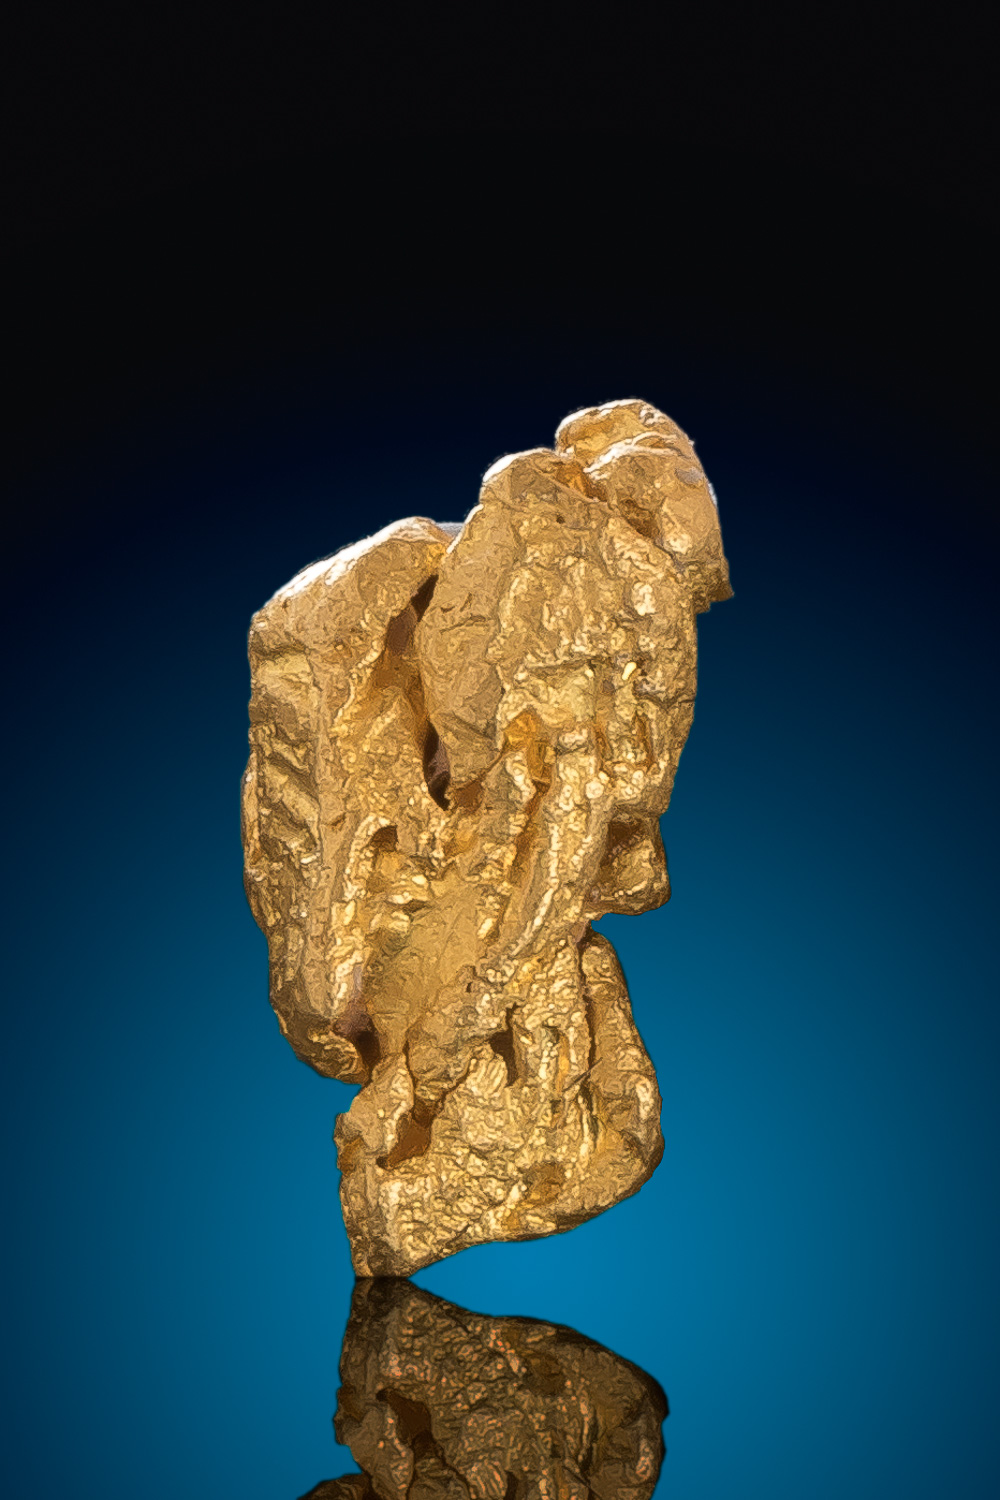 Elongated Gold Nugget Crystal from Venezuela